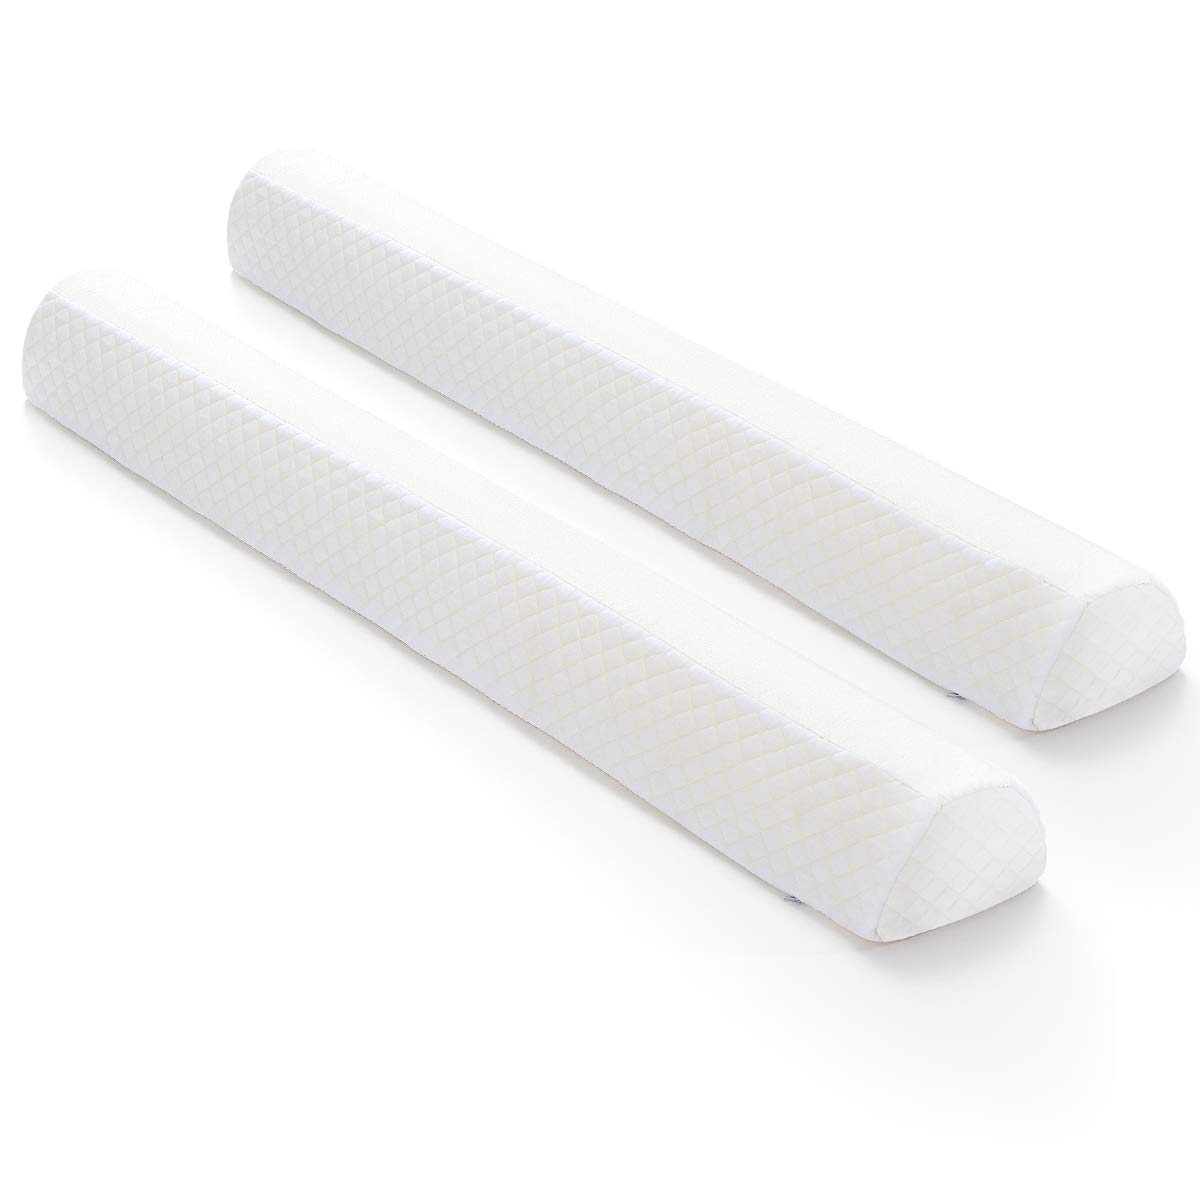 Amazon Com Toddler Bed Rail Bumpers 2 Pack Safety Sleep Bedside Rail Guard For Toddlers Kids Baby Memory Foam Long Pillow Pads With Non Slip Machine Washable Cover Shinnwa Kitchen